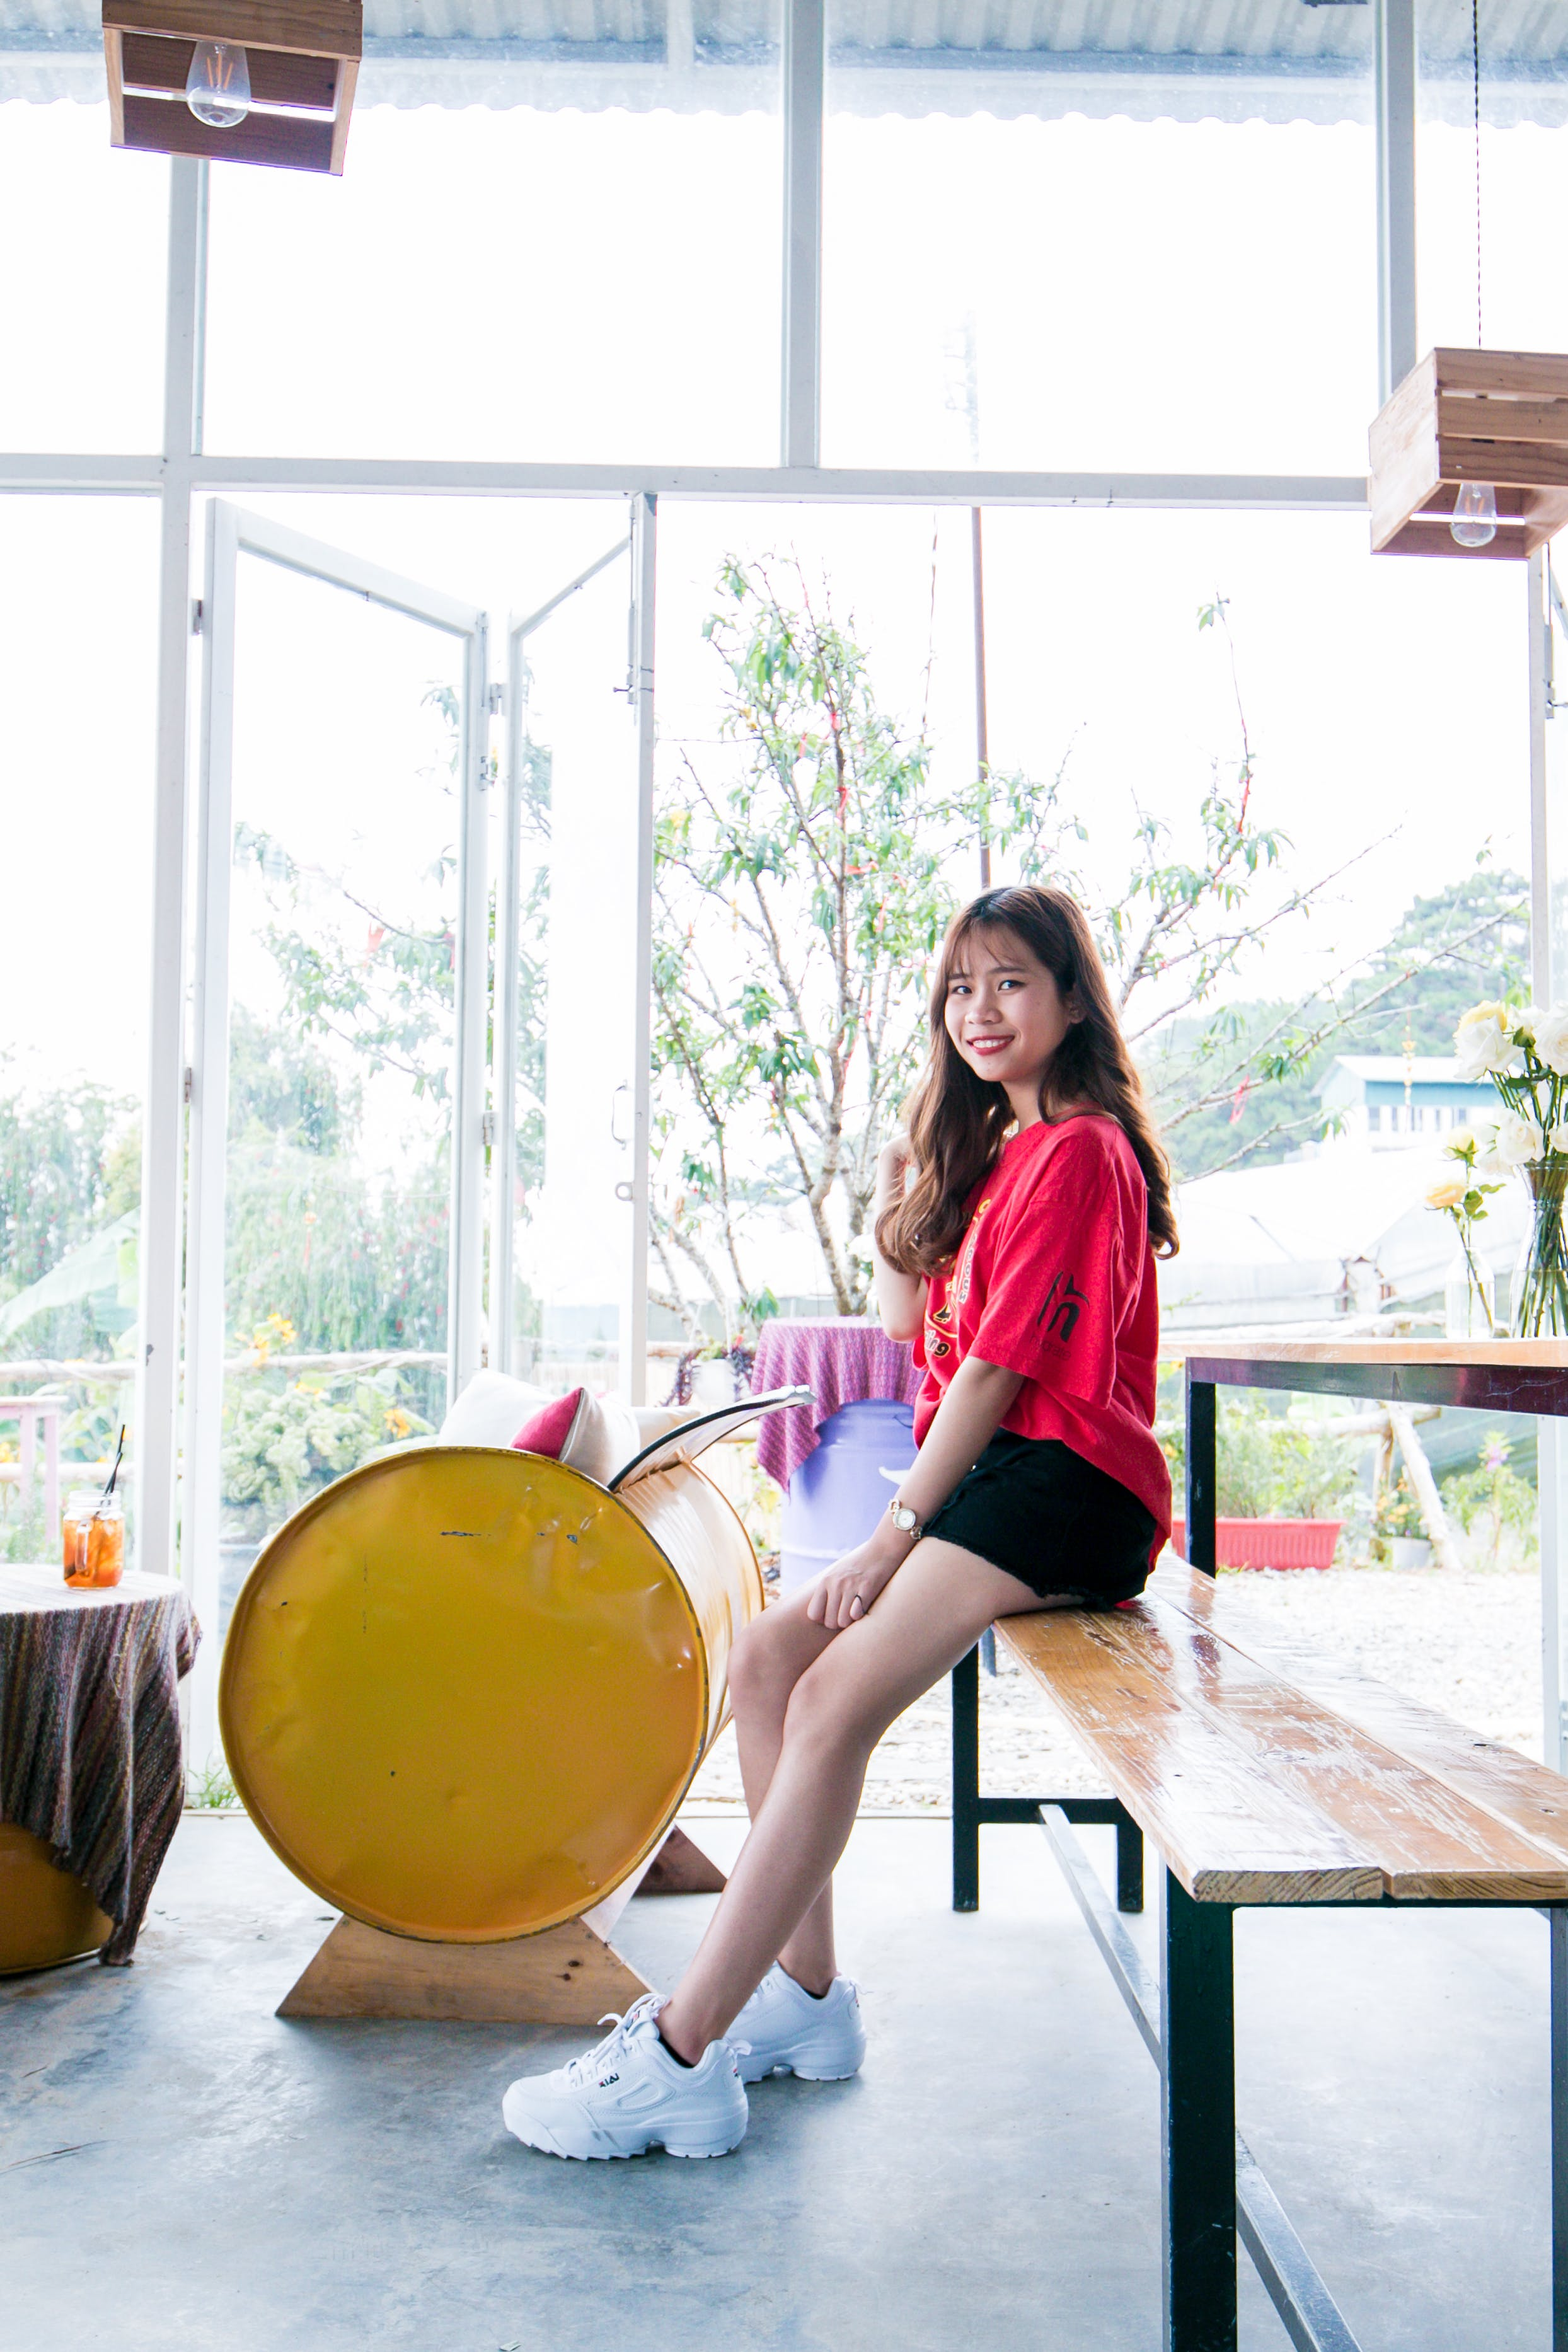 Woman Wearing Red Blouse and Black Short While Sitting on Table